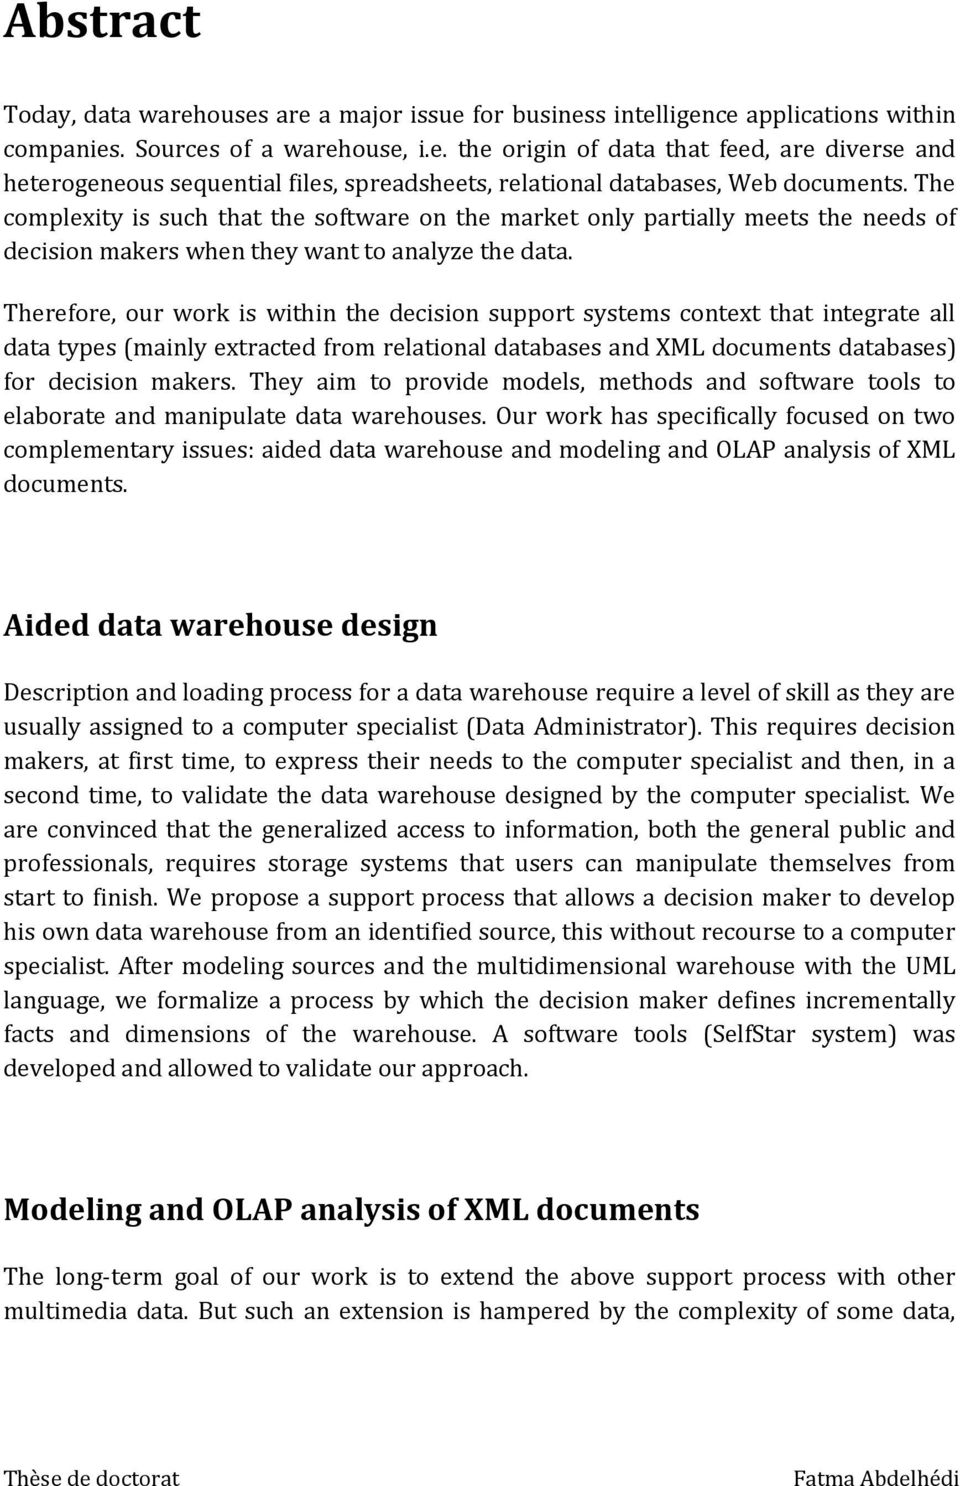 Therefore, our work is within the decision support systems context that integrate all data types (mainly extracted from relational databases and XML documents databases) for decision makers.